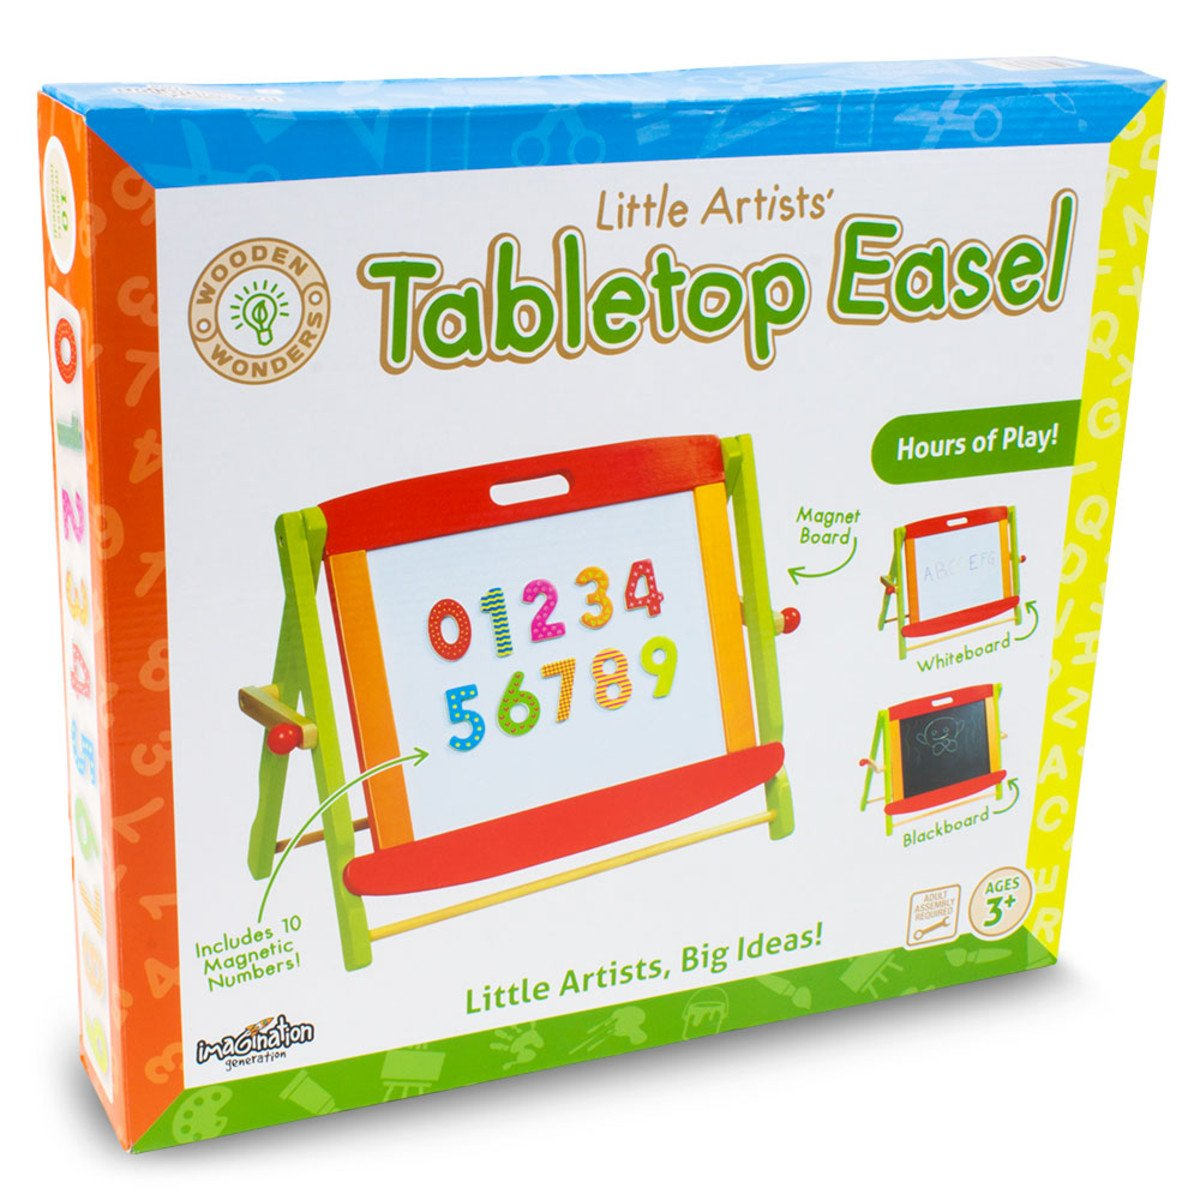 Little Artists' Tabletop Easel - Juniper Days